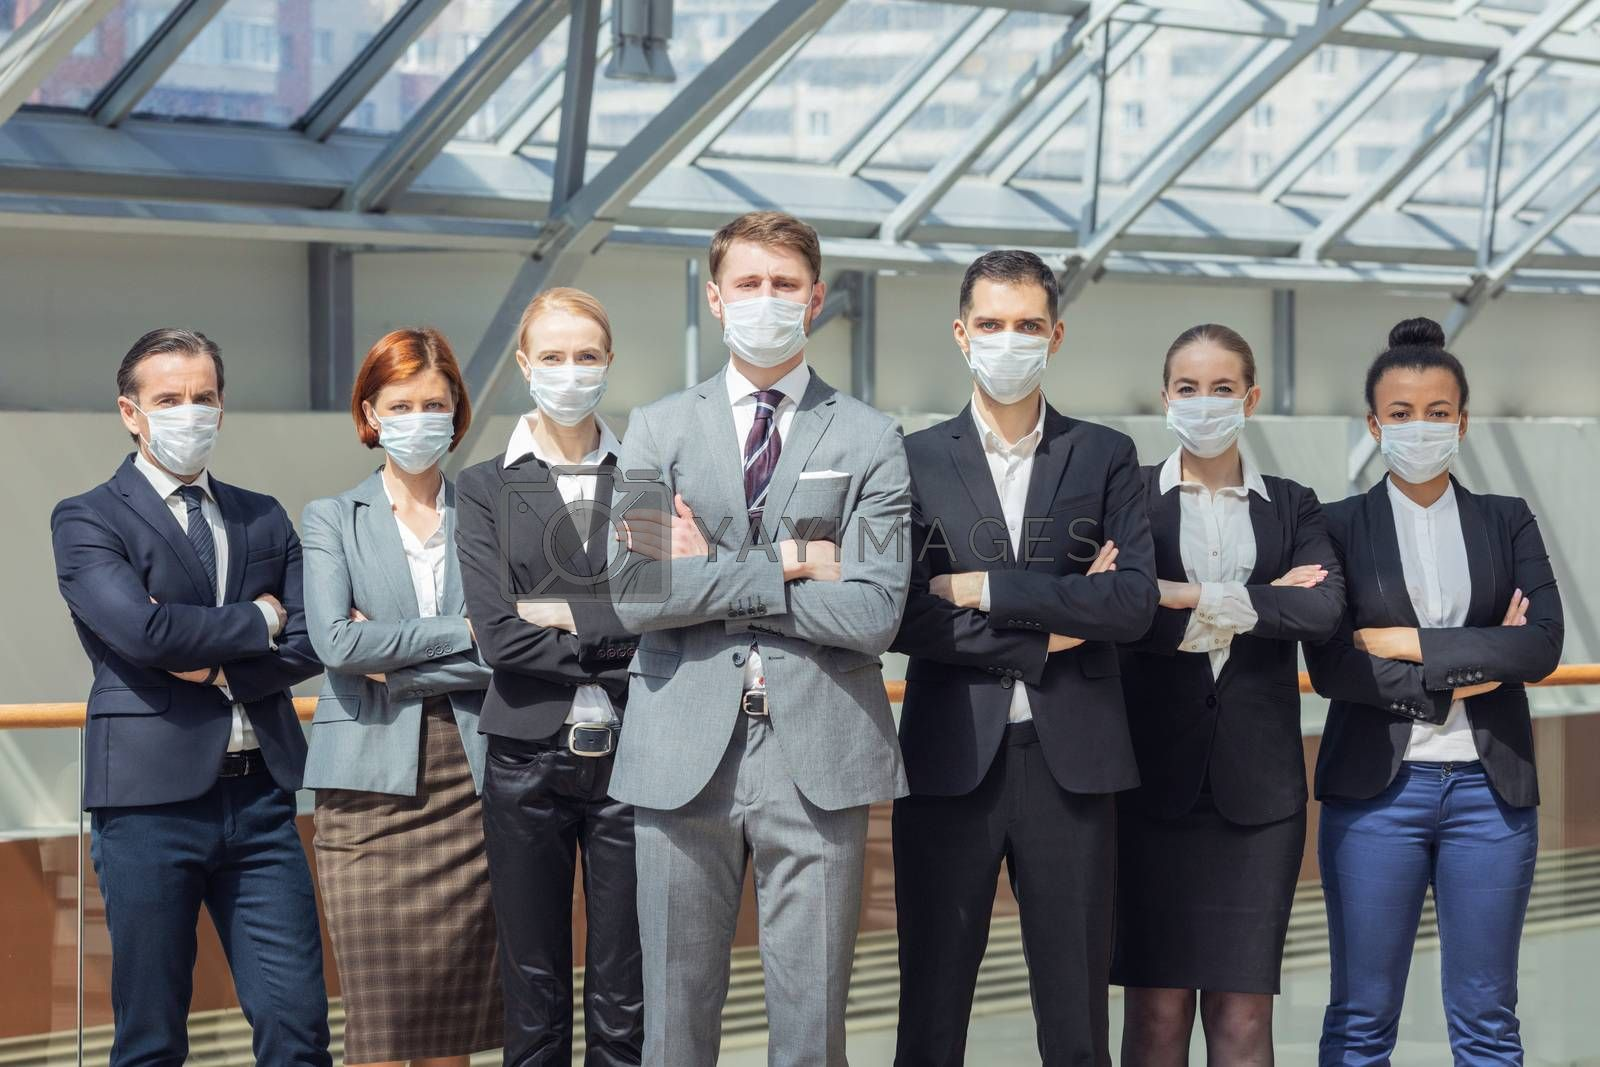 Business people wearing surgical masks and standing together, healthcare and covid-19 prevention concept